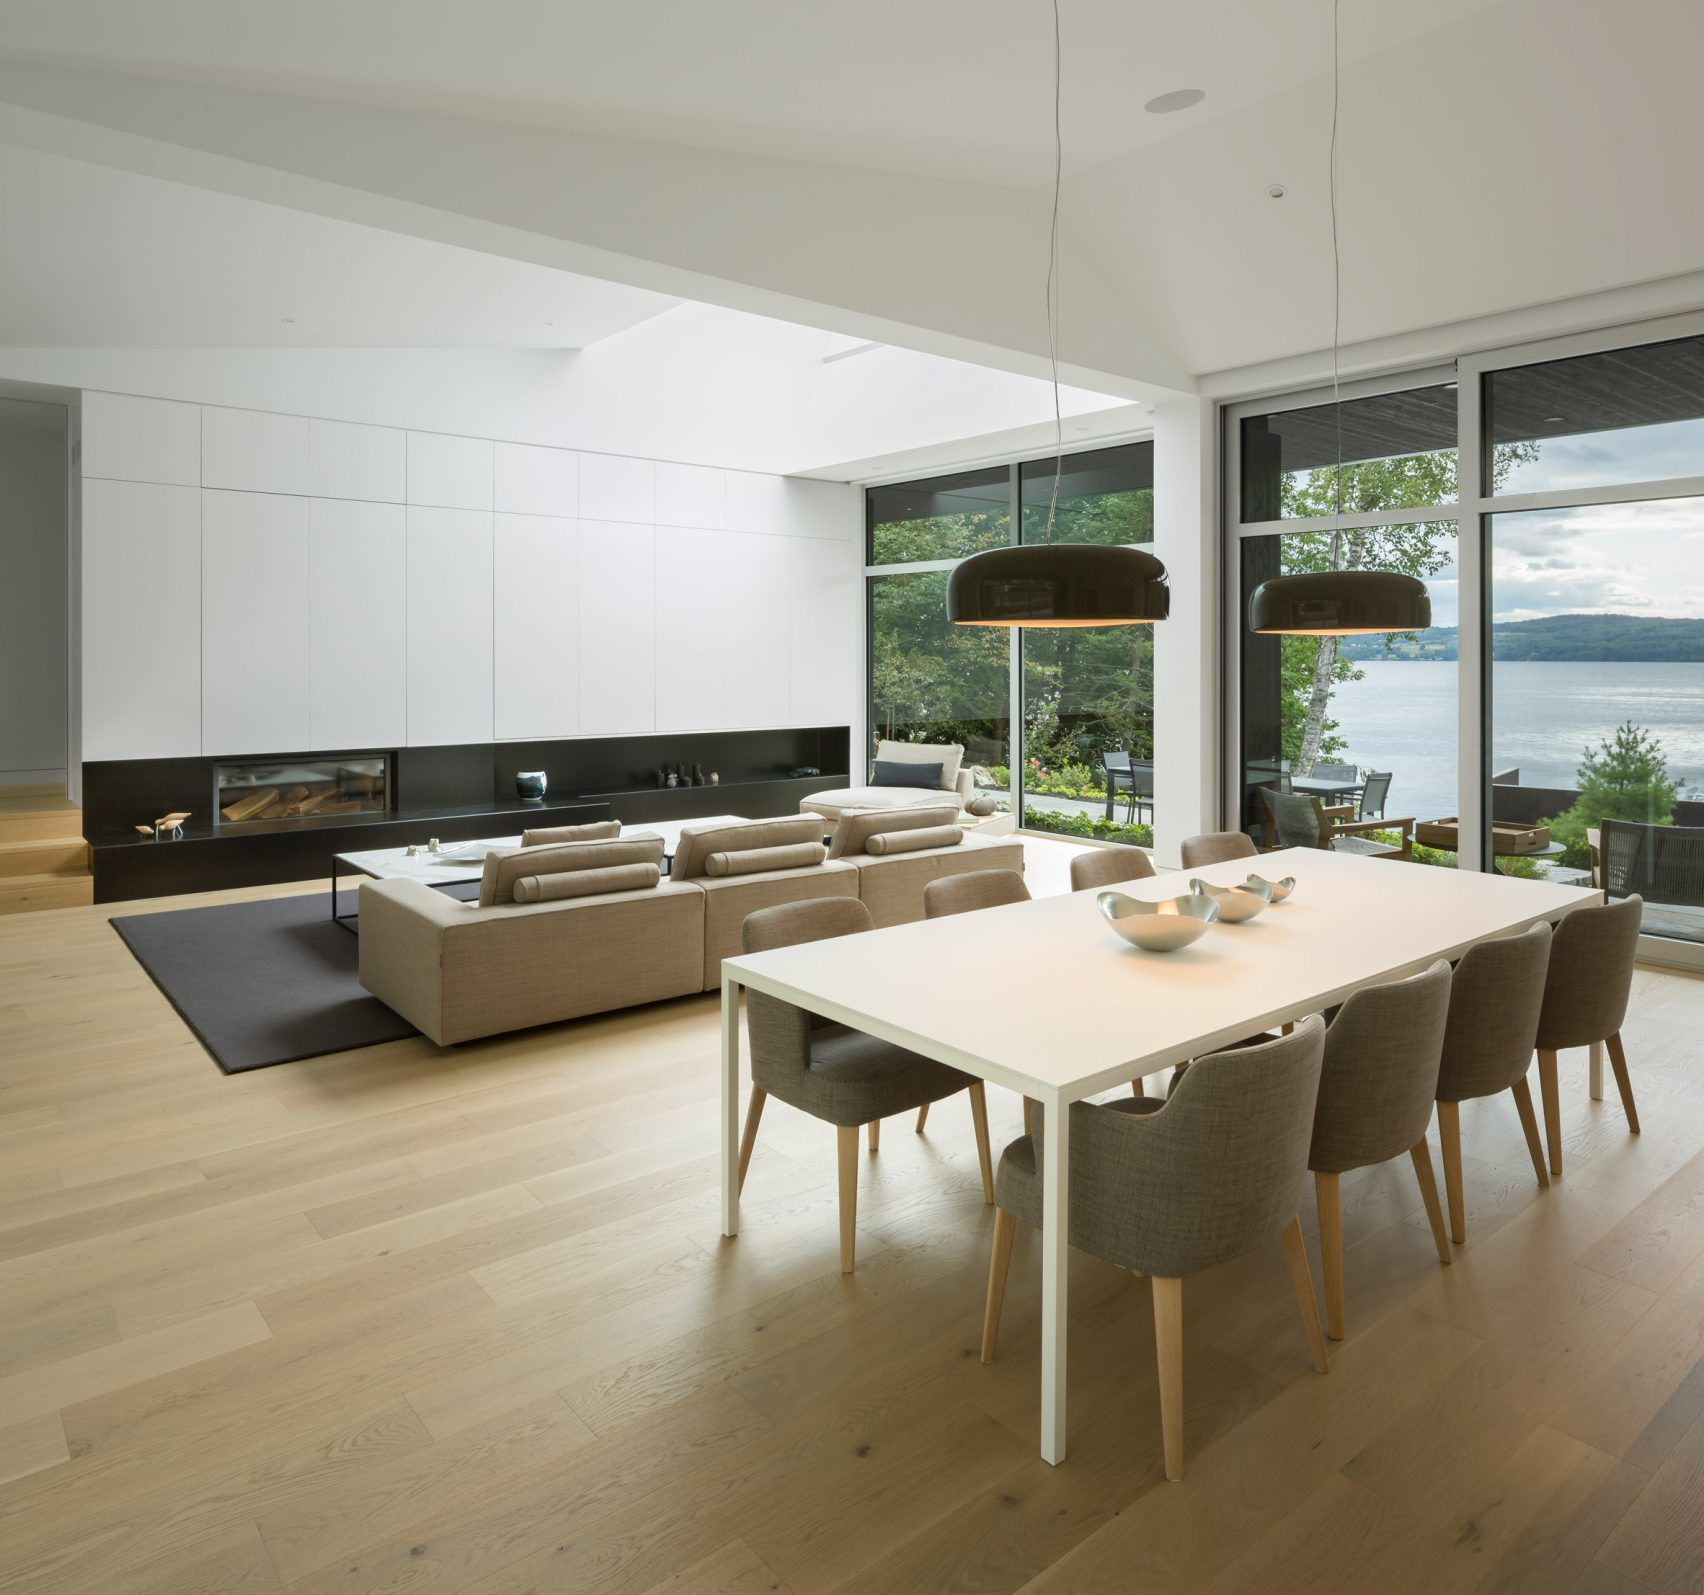 https://www.curbed.com/2018/1/18/16904800/modern-lakehouse-montreal-mu-architecture?utm_medium=email&utm_campaign=Curbed%20Dotcom%2001182018&utm_content=Curbed%20Dotcom%2001182018+CID_4b09b6a979e9a32304df0aecb0606999&utm_source=cm_email&utm_term=Insert%20alt%20text%20here